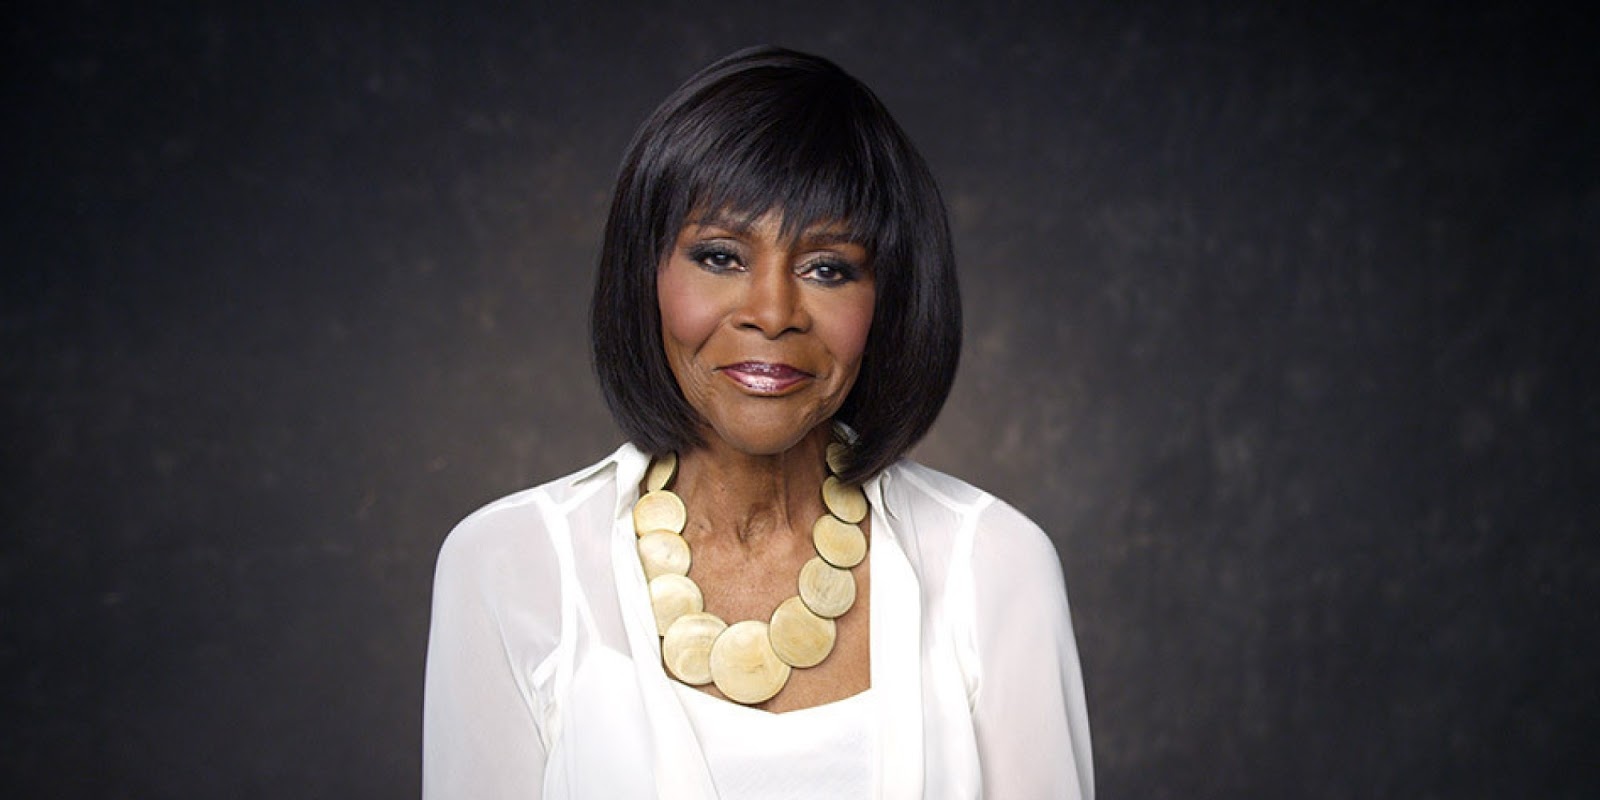 Reshaping the African-American Image by Linda Morand Cicely tyson model photos